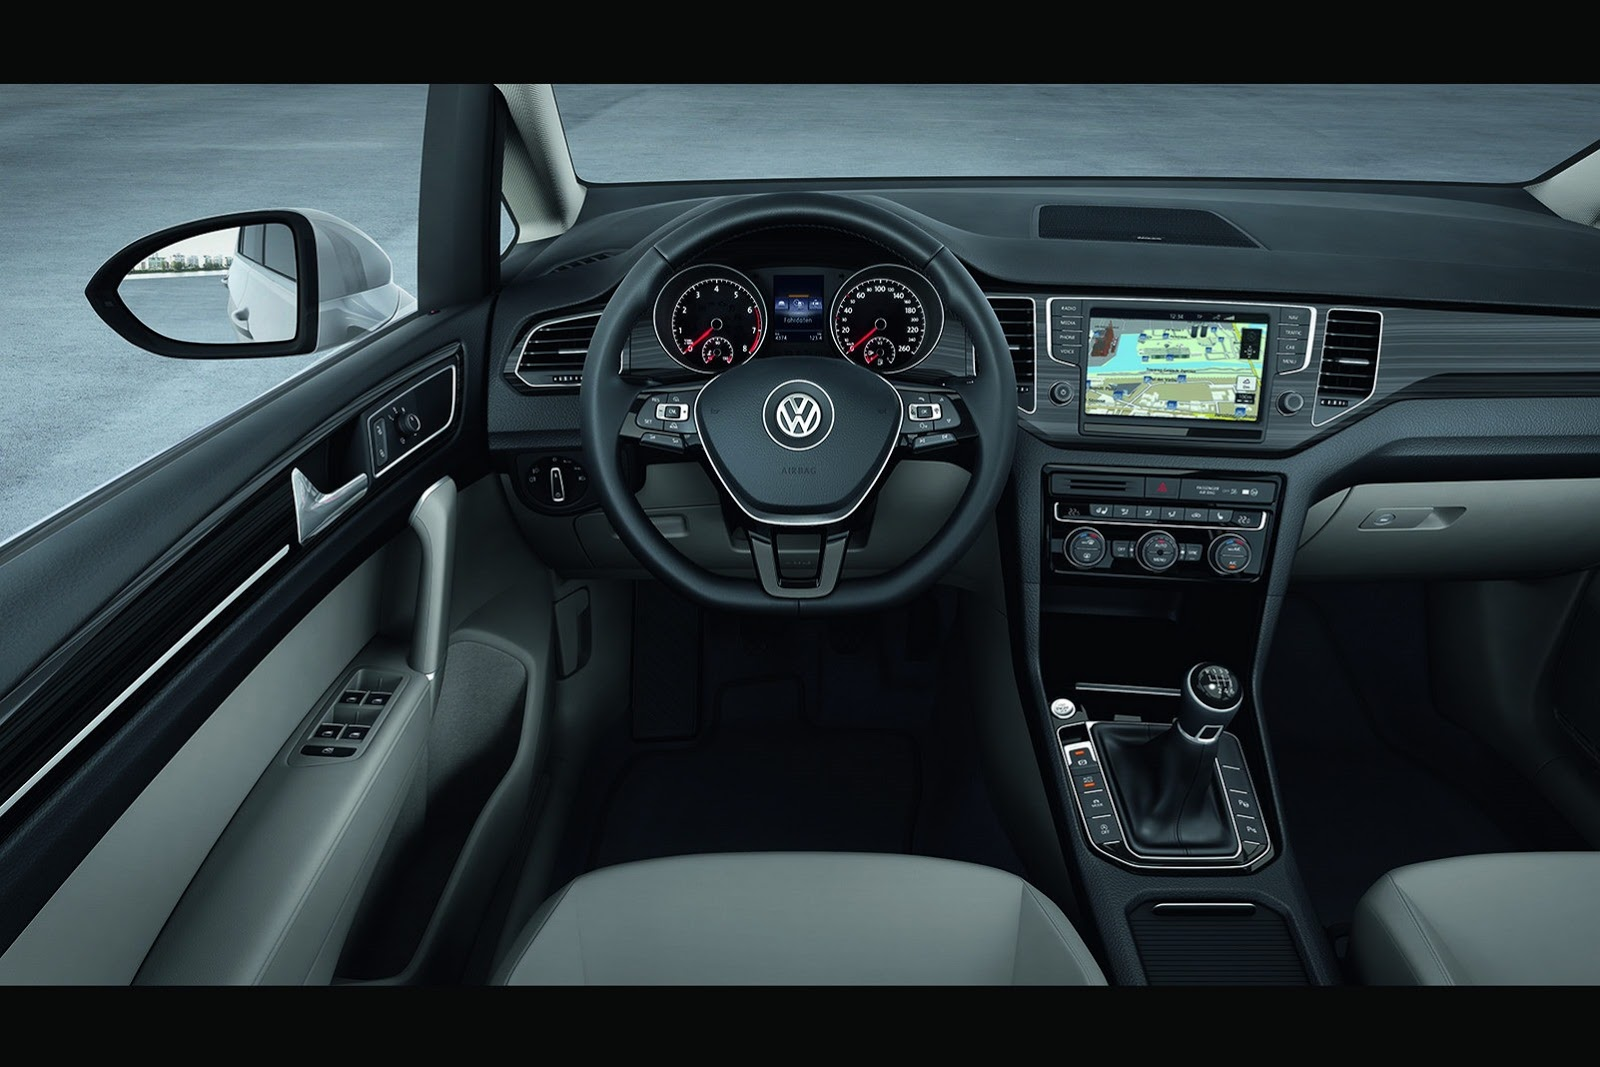 Frankfurt Motor Show 2013, VW Golf Sportsvan interior: VW Golf Sportsvan : Pengganti VW Golf Plus